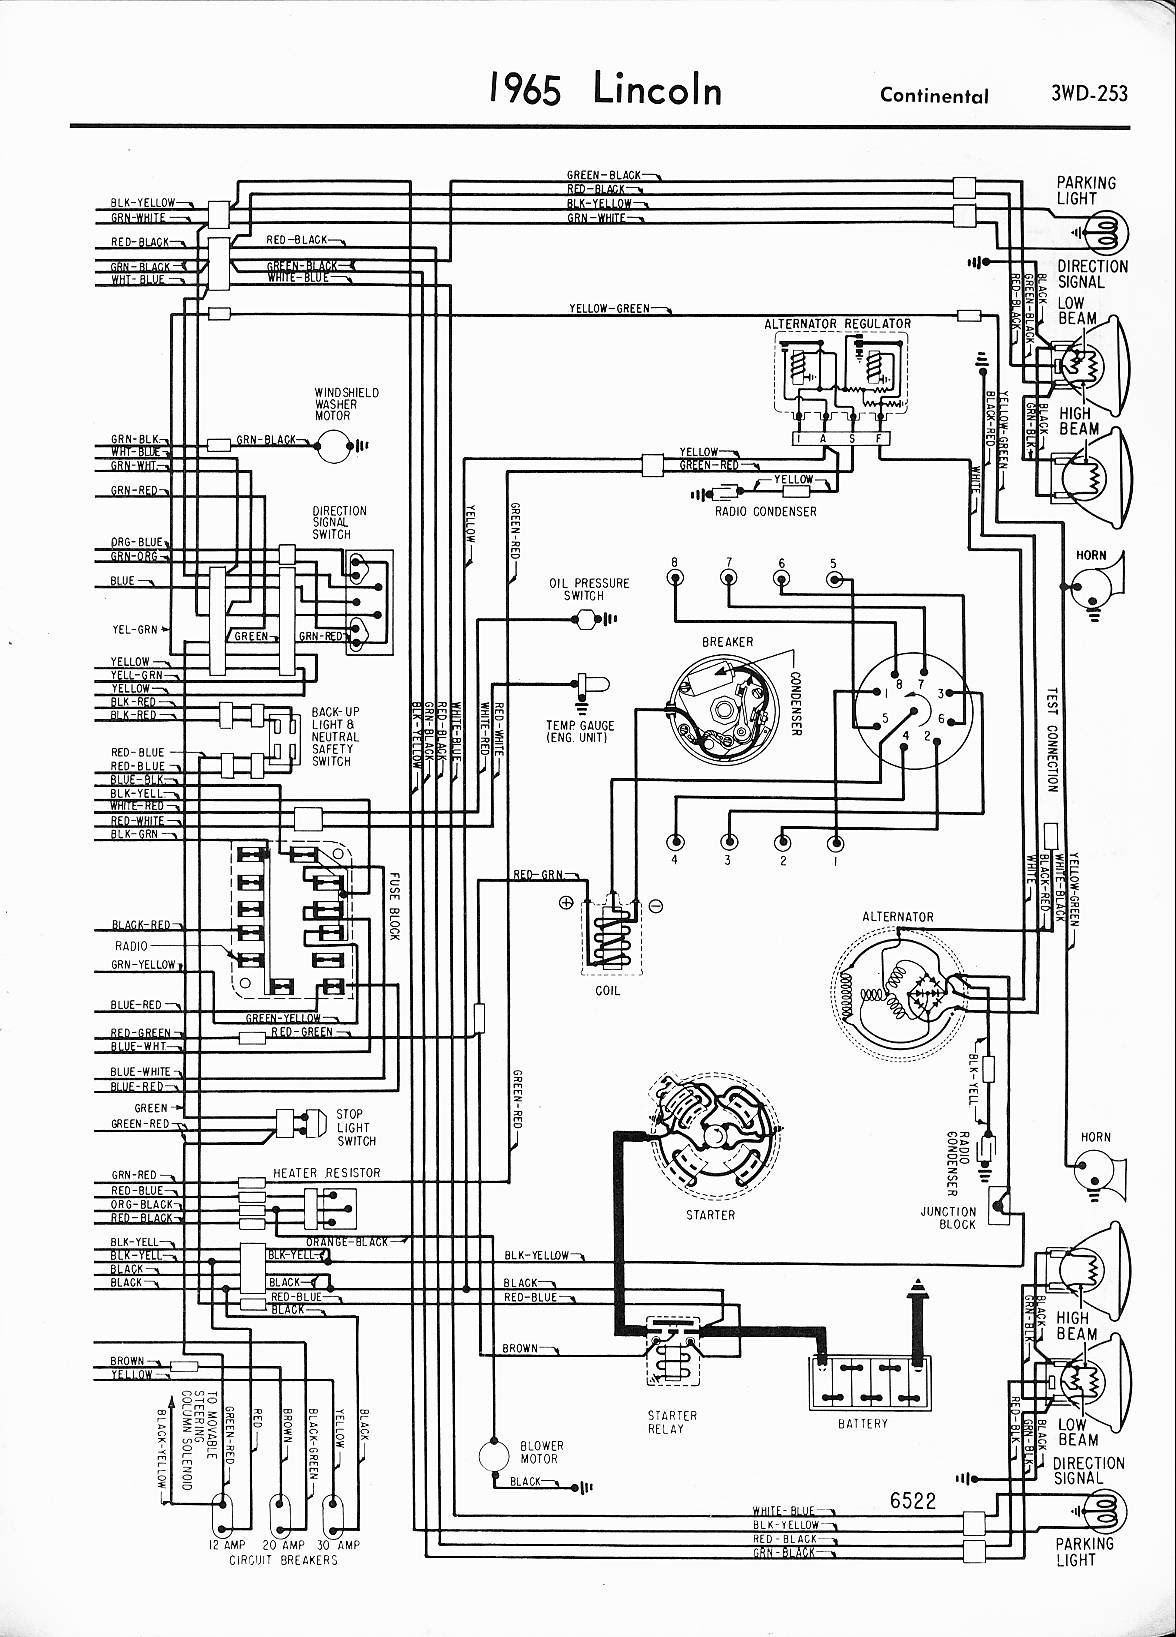 1971 Ford Torino Fuse Box Diagram Rca To Hdmi Wire Diagram Bege Wiring Diagram